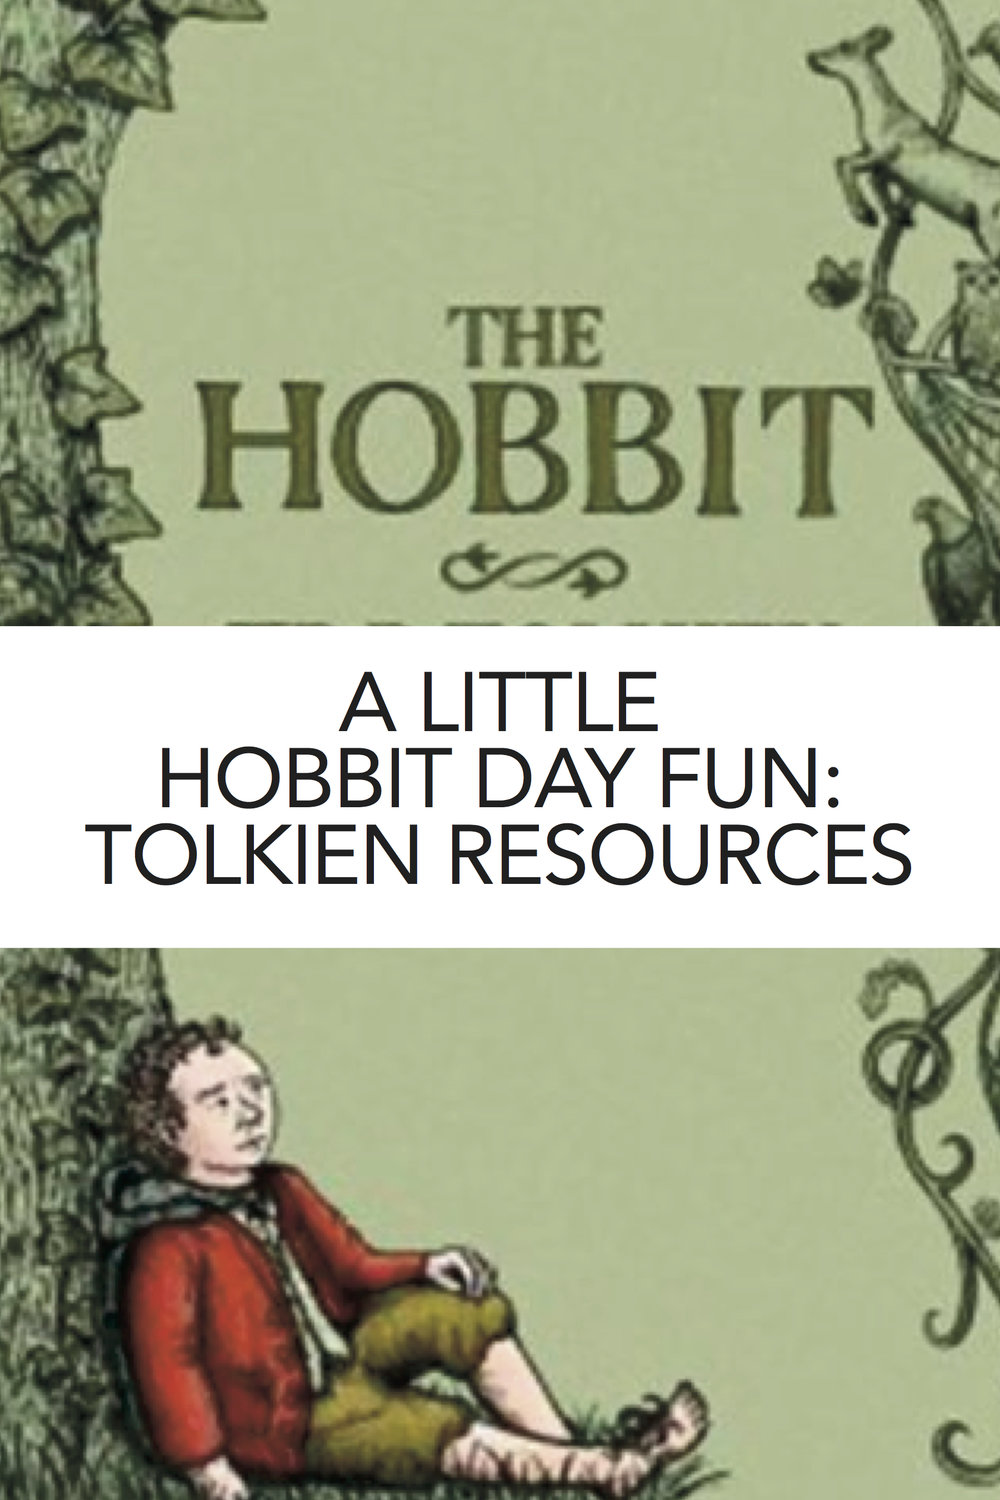 Great roundup of resources and activities for studying The Hobbit